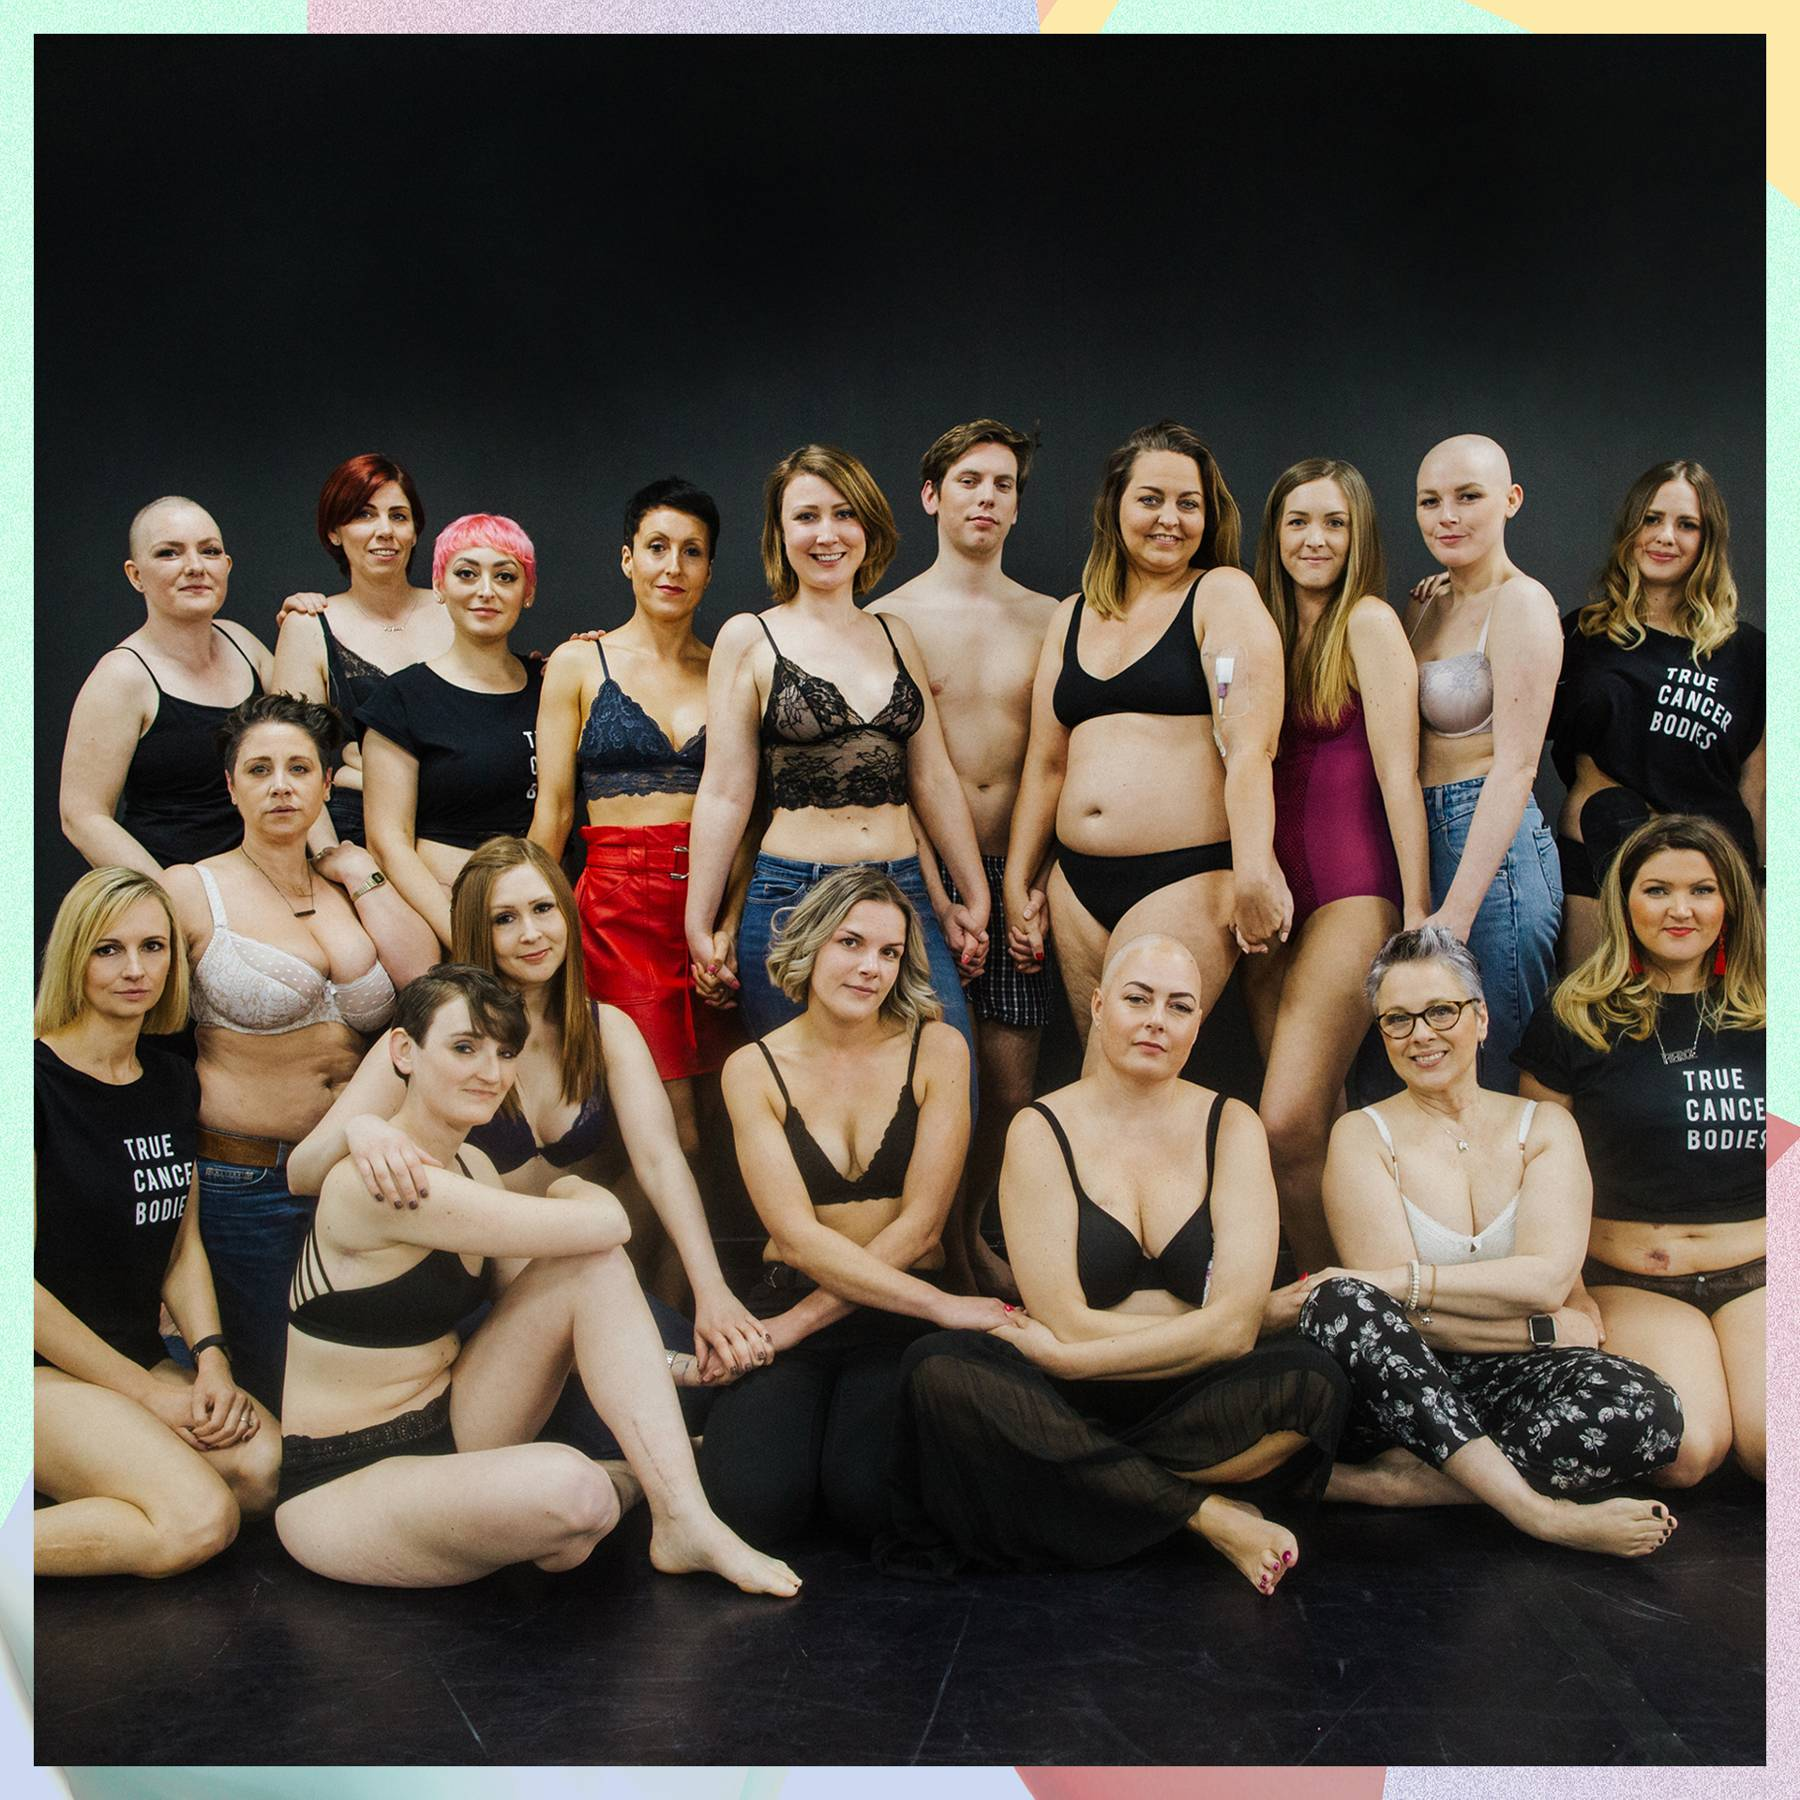 The True Cancer Bodies campaign shows brave patients proudly displaying their scars to authentically highlight the reality of cancer